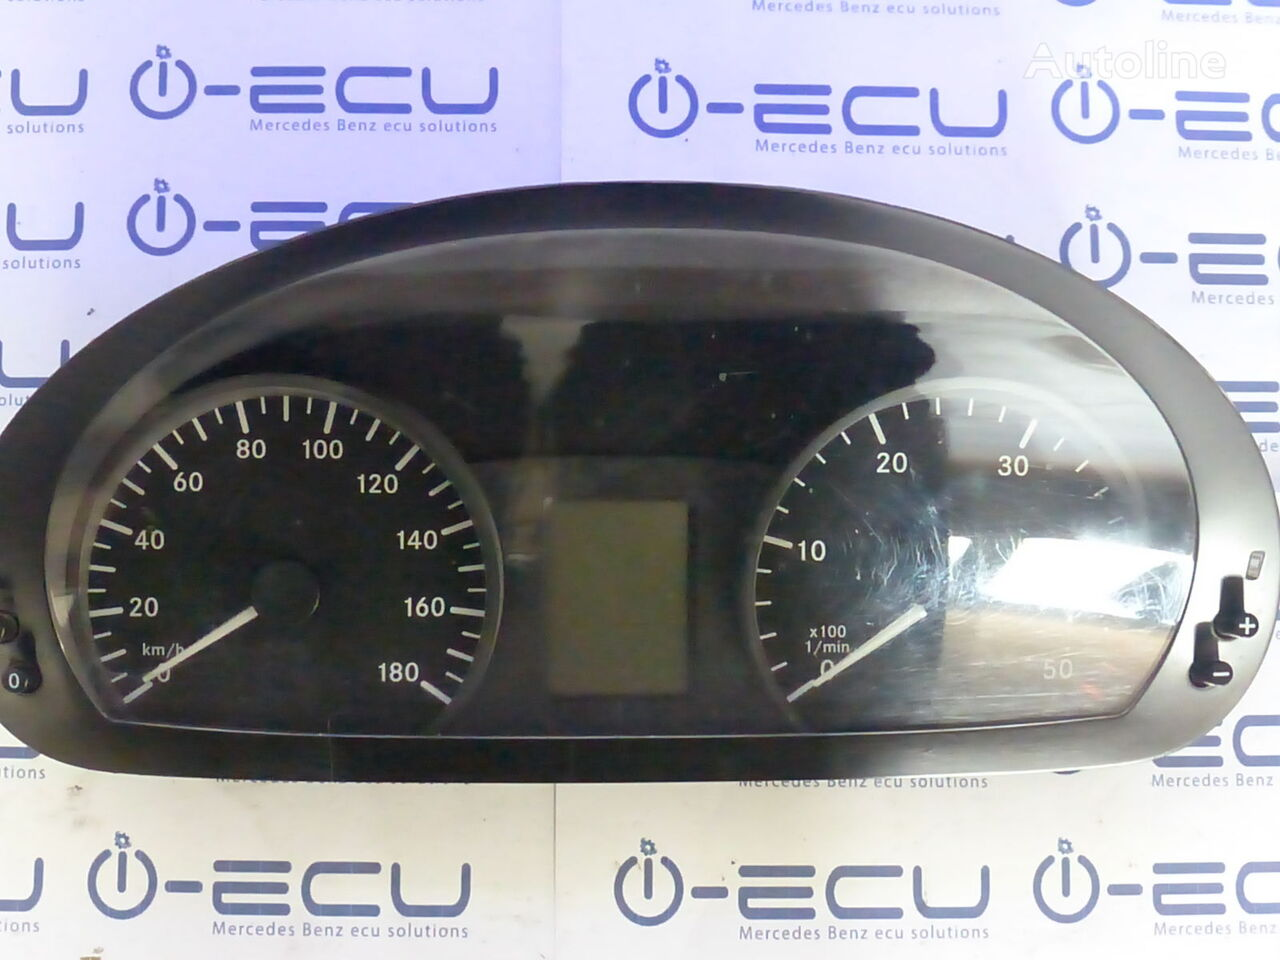 MERCEDES-BENZ A 9064465821 tachometer for MERCEDES-BENZ SPRINTER 906 automobile